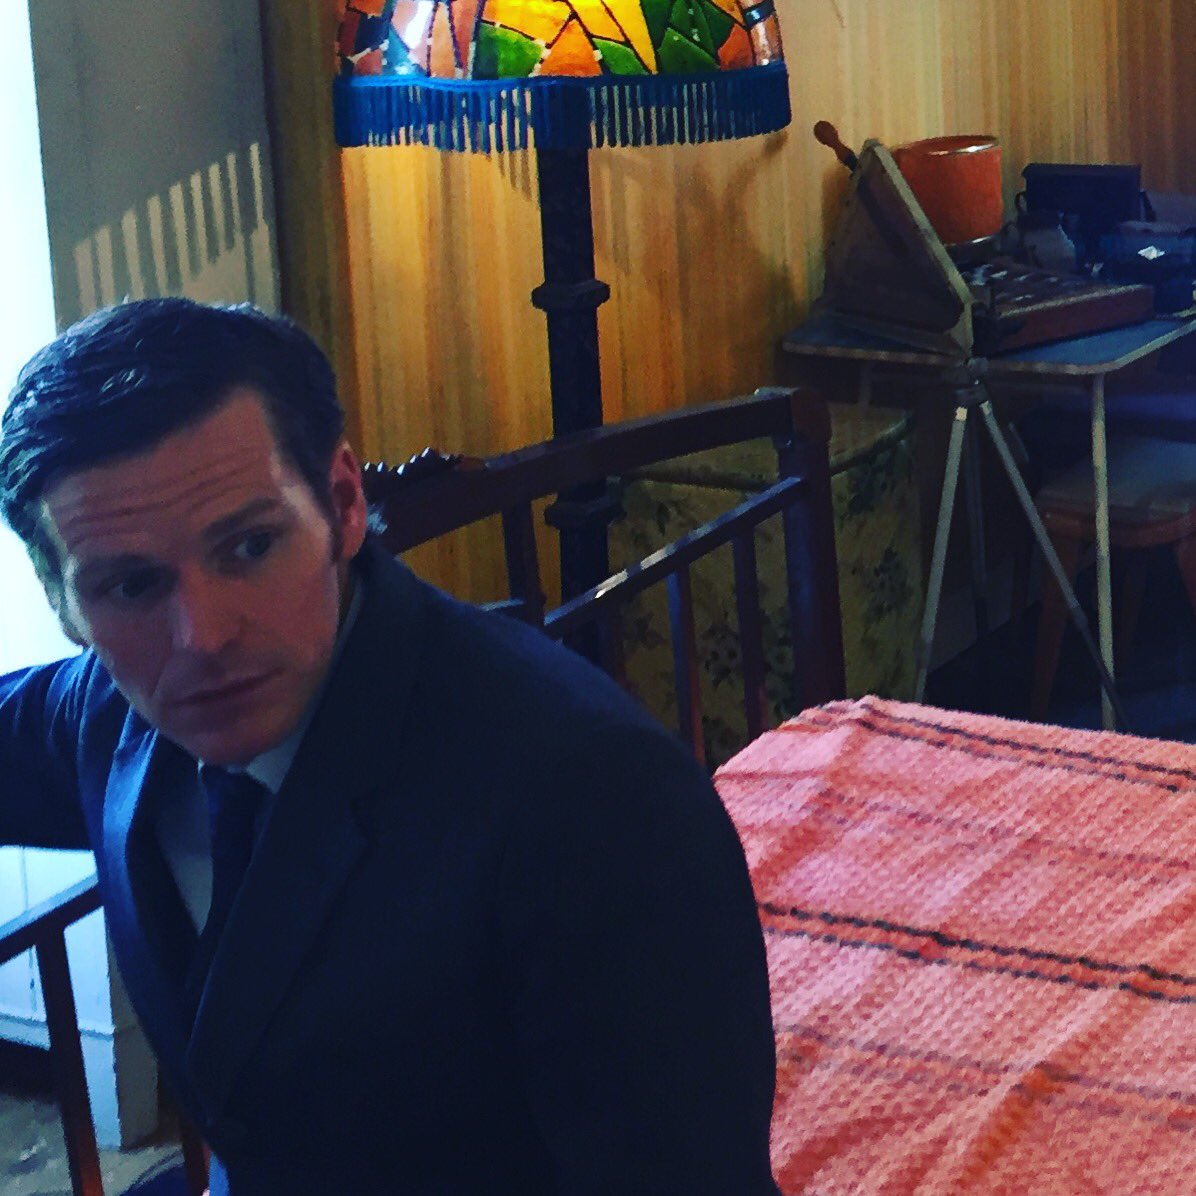 #128of196 Friday at last. Been a bit of a week. #endeavour #productiondesign<br>http://pic.twitter.com/zVL4BkUz06